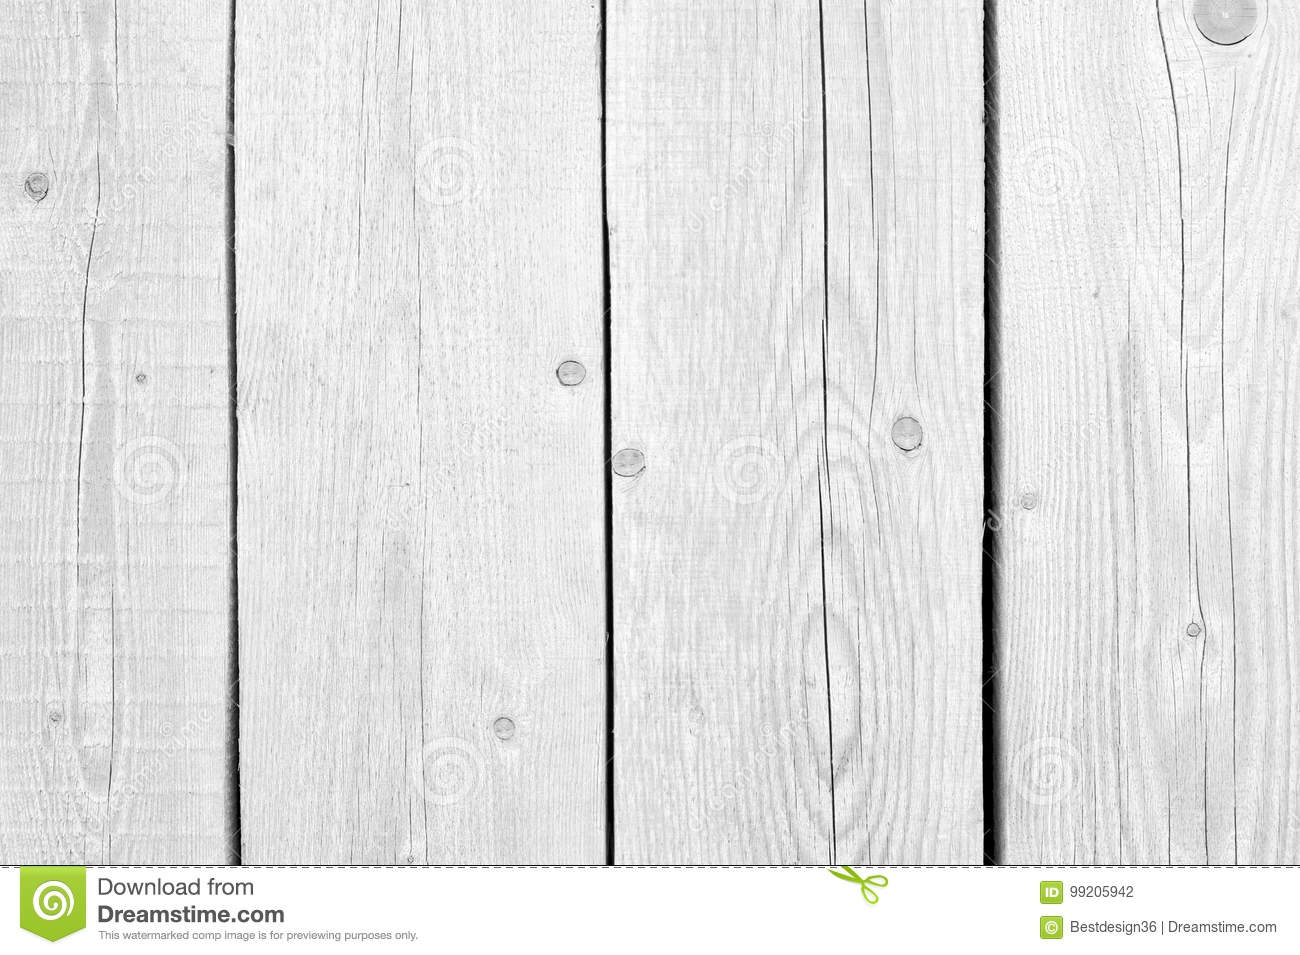 White Old Wood Or Wooden Vintage Plank Floor Or Wall